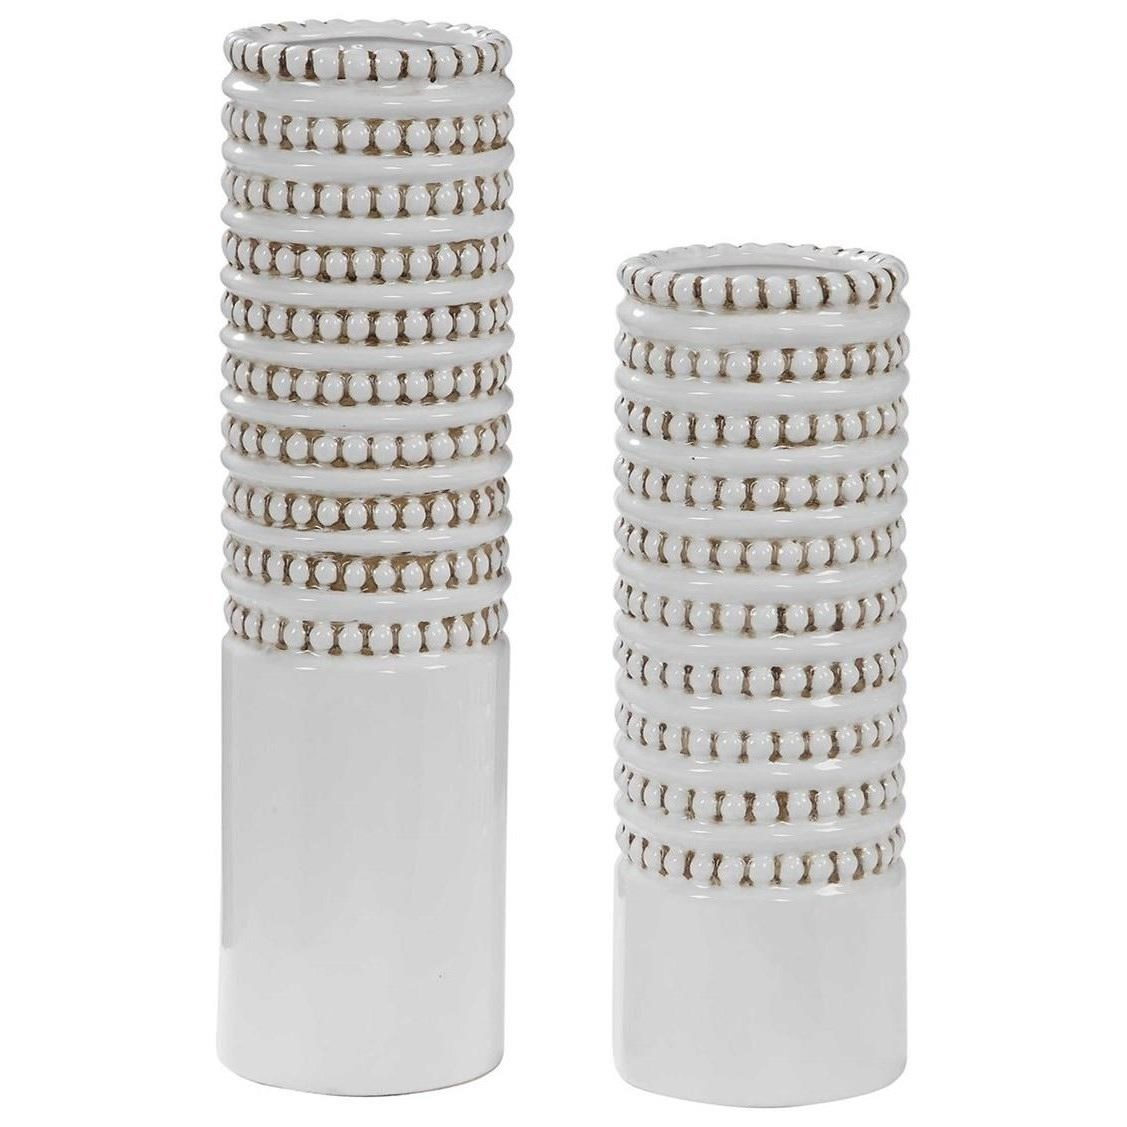 Accessories - Vases and Urns Angelou White Vases, Set/2 by Uttermost at Wayside Furniture